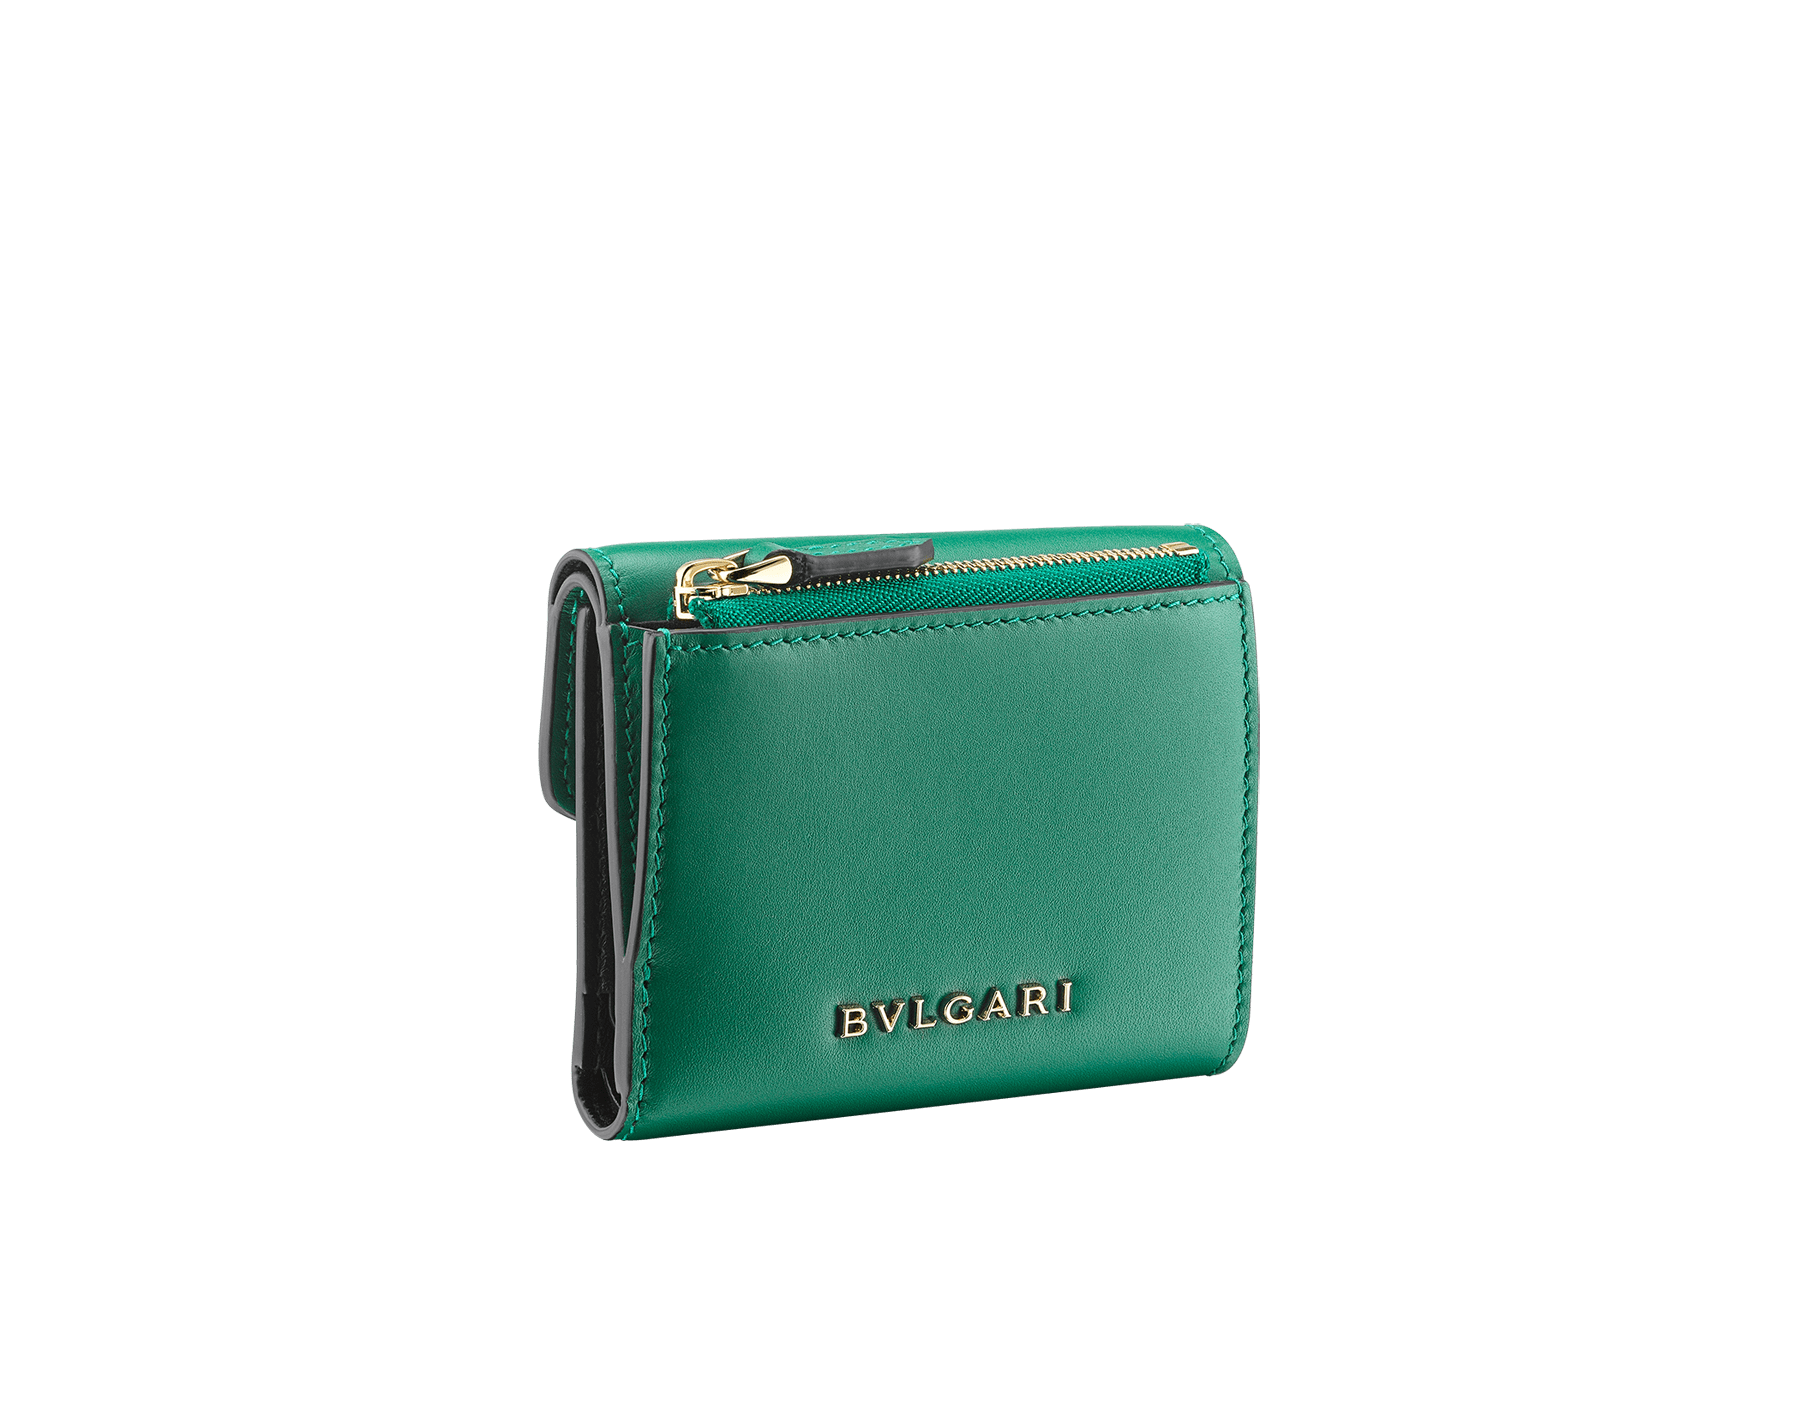 Serpenti Forever compact wallet in daisy topaz calf leather and white agate goatskin. Iconic light gold plated brass snake head stud closure in white agate and daisy topaz enamel, with black onyx eyes. SEA-SLIMCOMPACT-CLa image 6